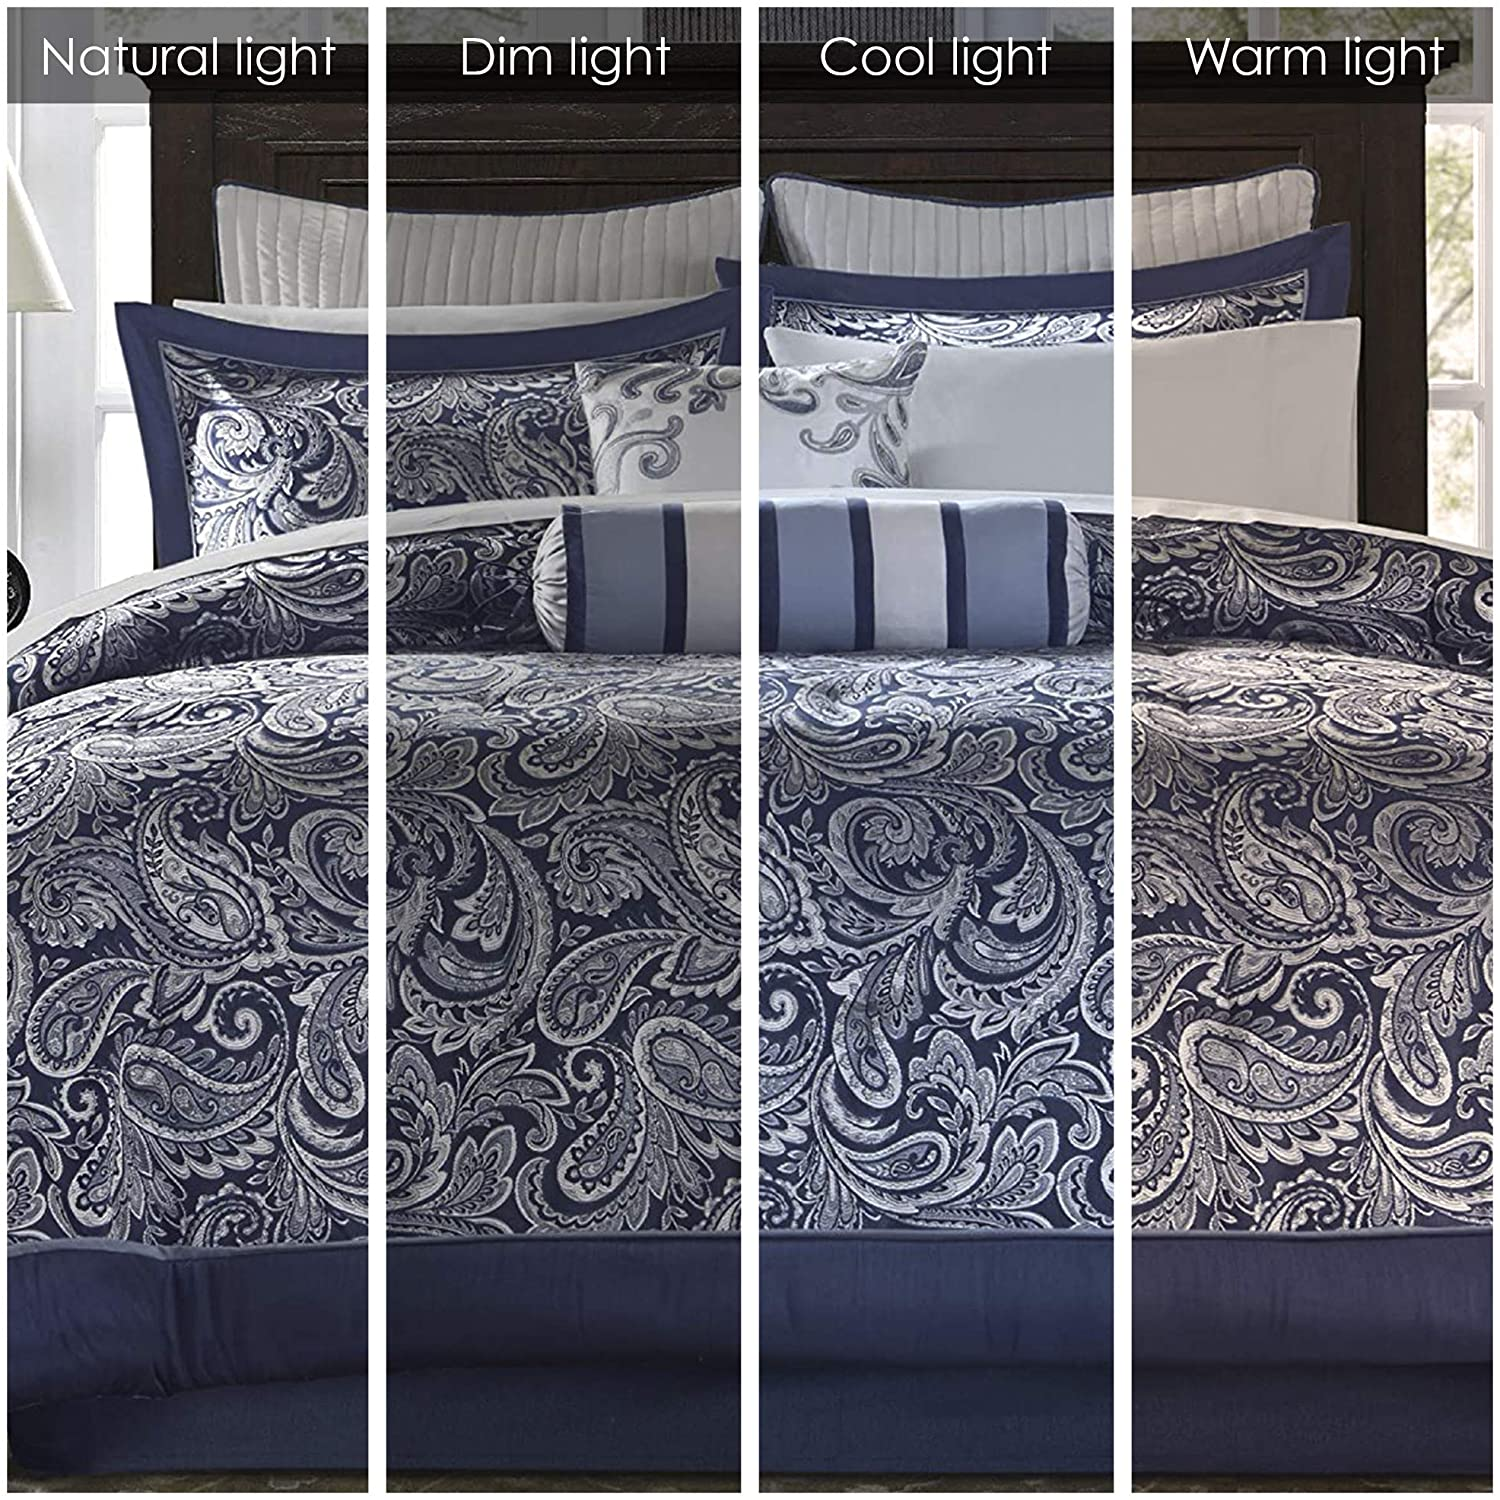 Madison Park Aubrey King Size Bed Comforter Set Bed In A Bag - Navy, Grey , Paisley Jacquard – 12 Pieces Bedding Sets – Ultra Soft Microfiber Bedroom Comforters : Home & Kitchen